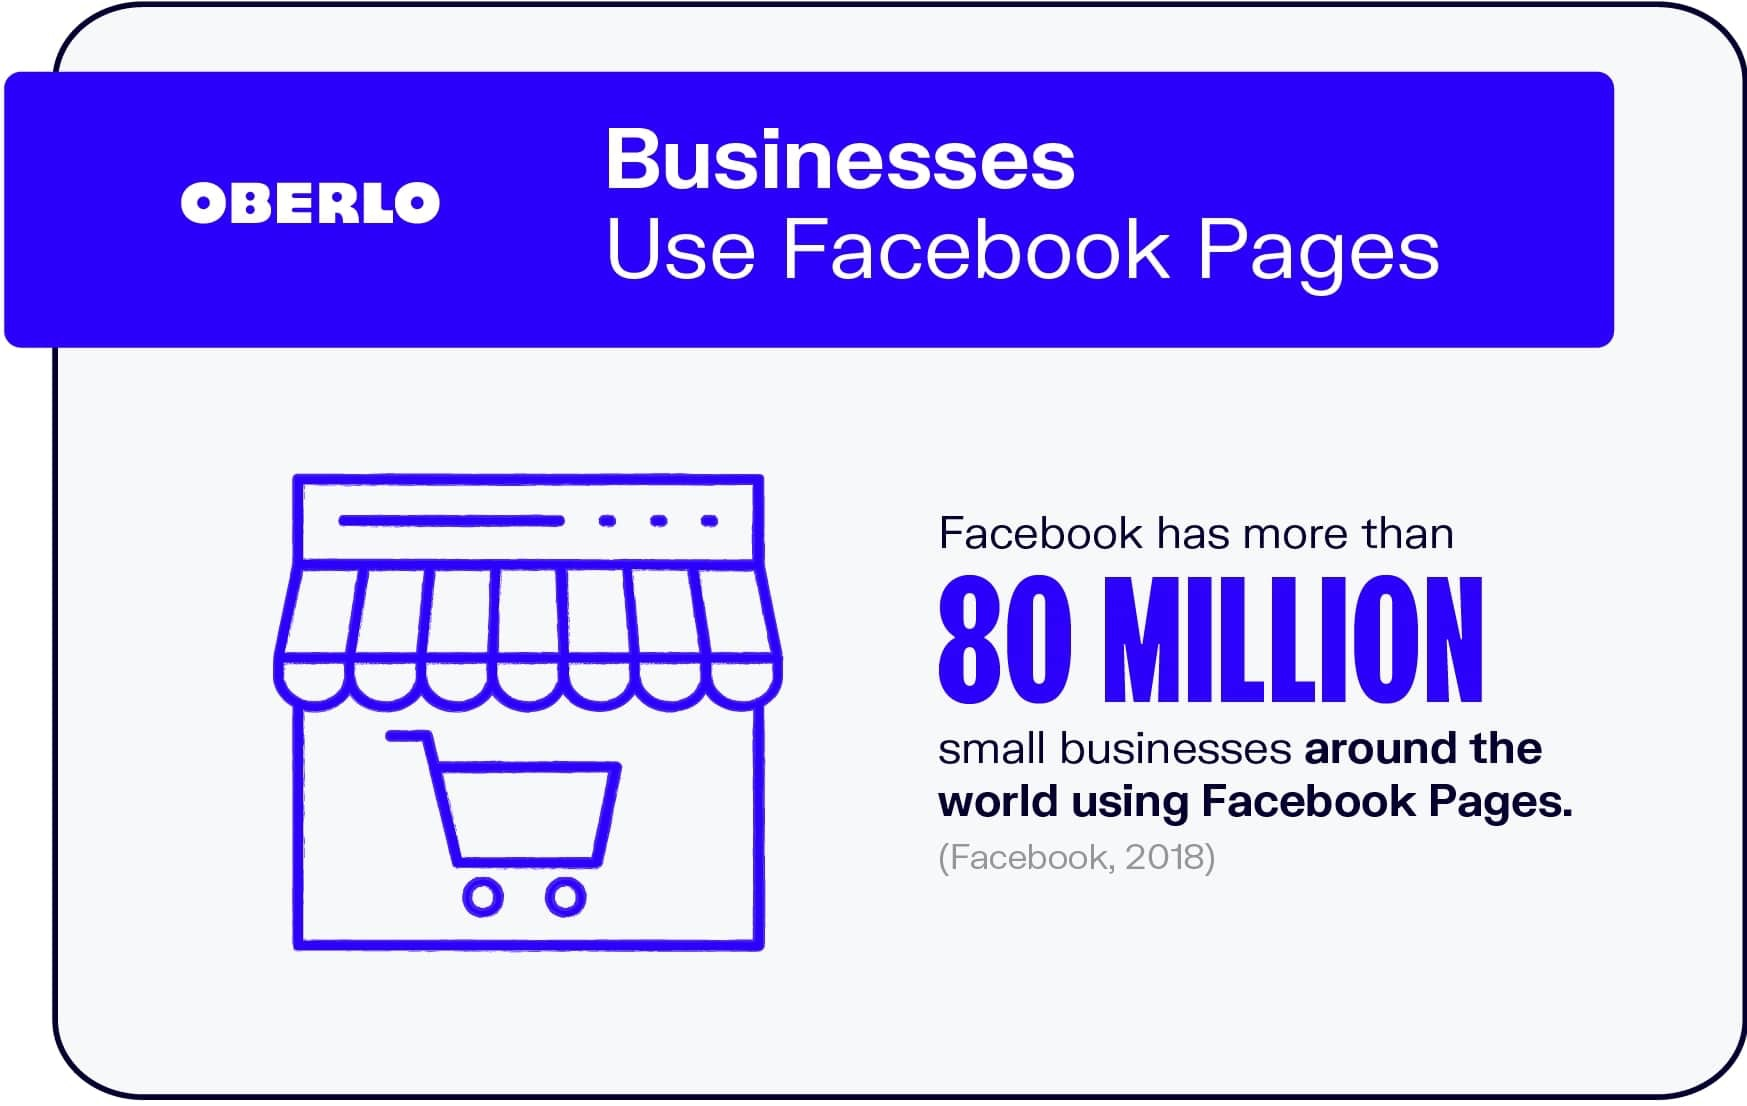 Businesses Use Facebook Pages